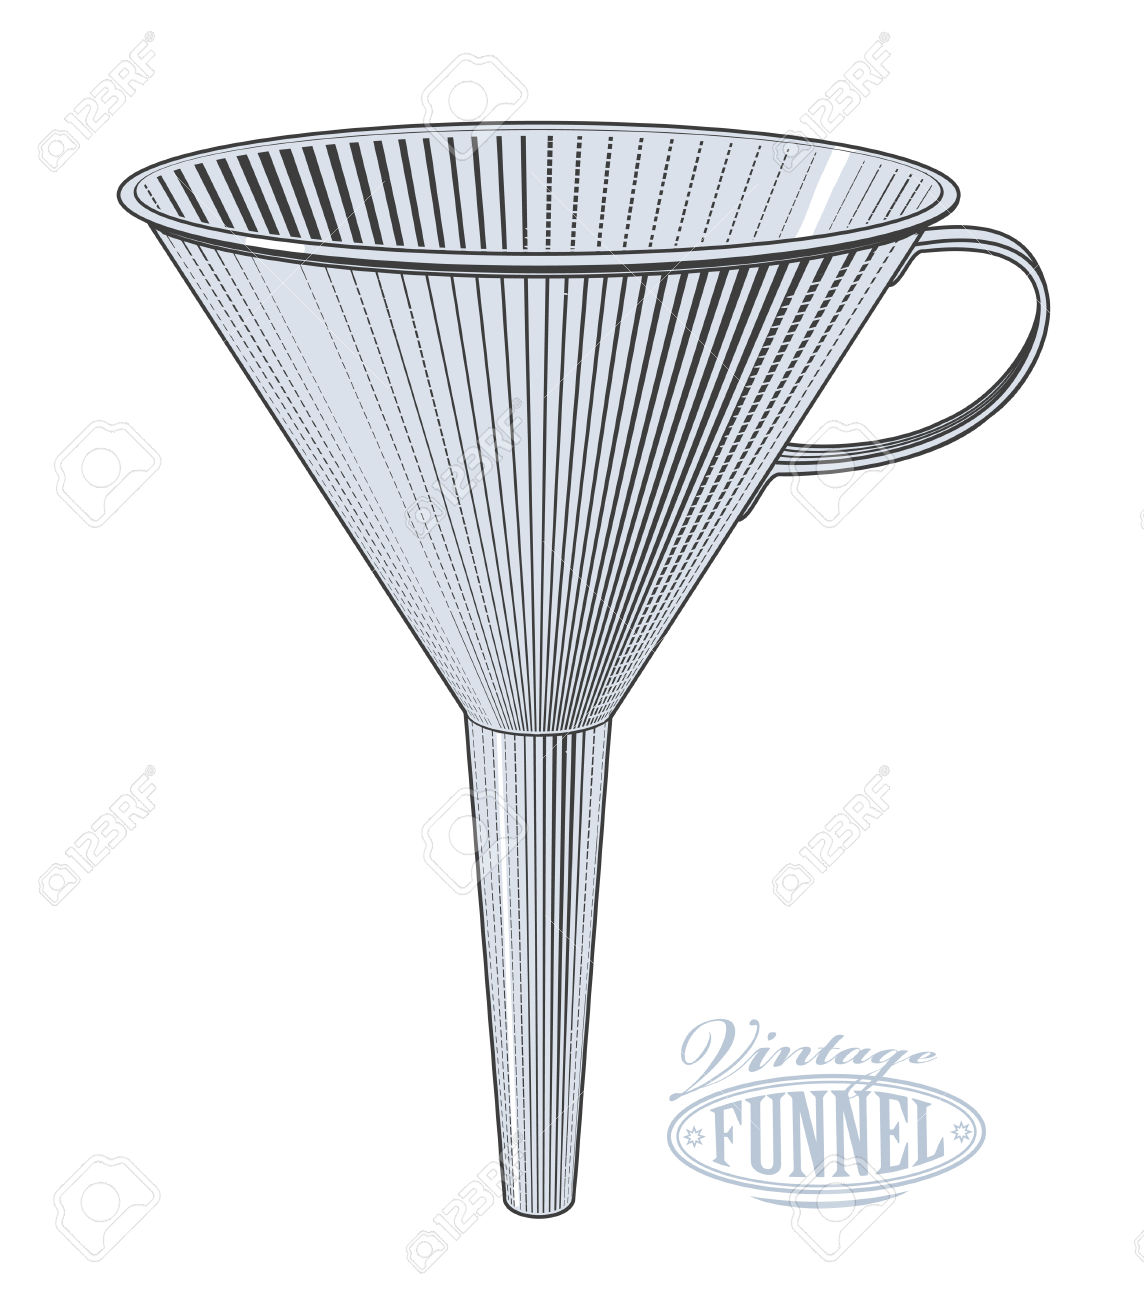 Funnel clipart #1, Download drawings